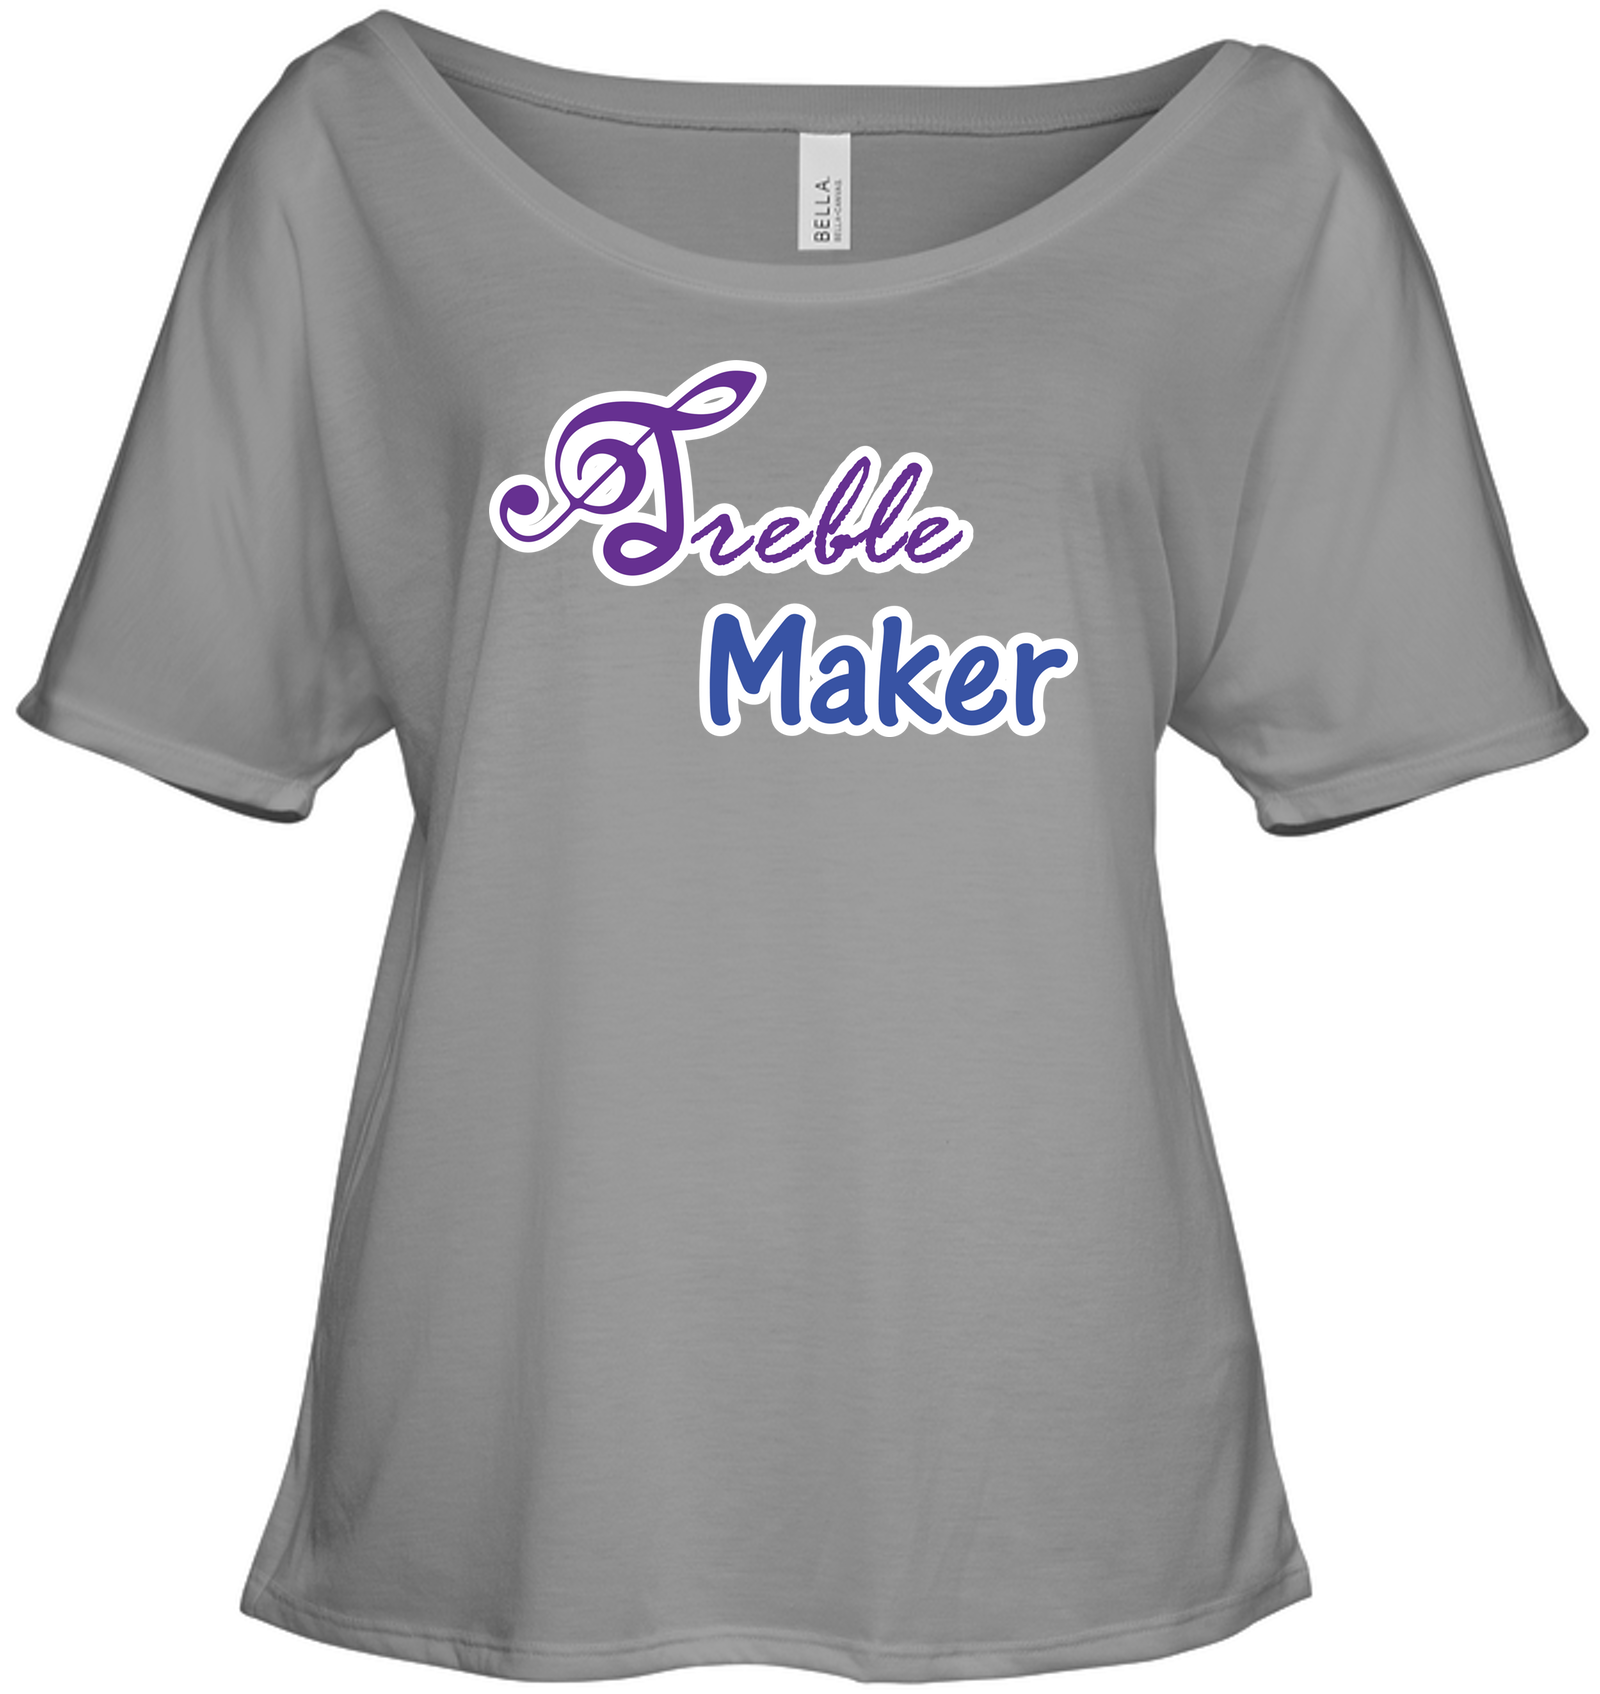 Treble Maker plain and simple - Bella + Canvas Women's Slouchy Tee